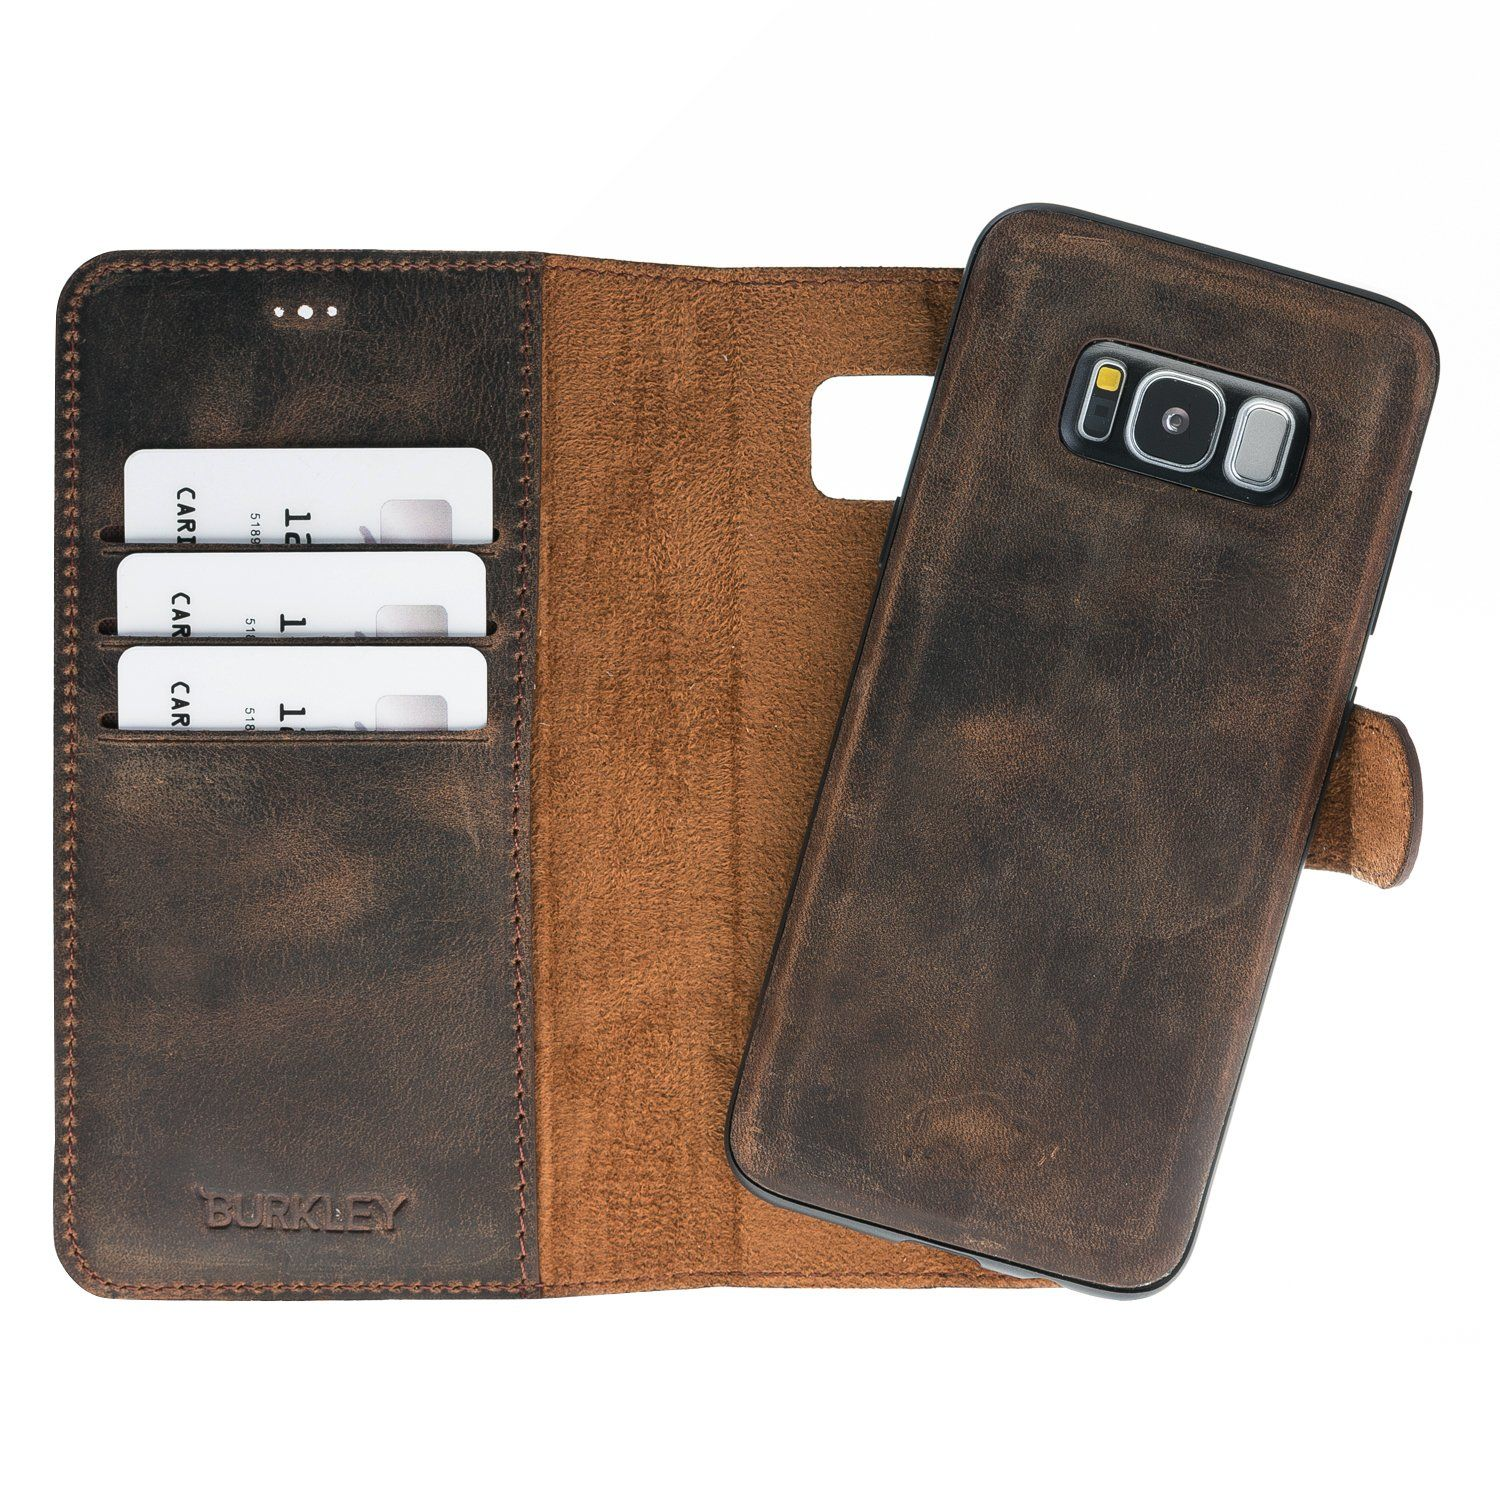 6535e2a98a75 Burkley Case Samsung Galaxy S8 Magnetic Detachable Premium Luxury Leather  Wallet Folio Case with Removable Snap